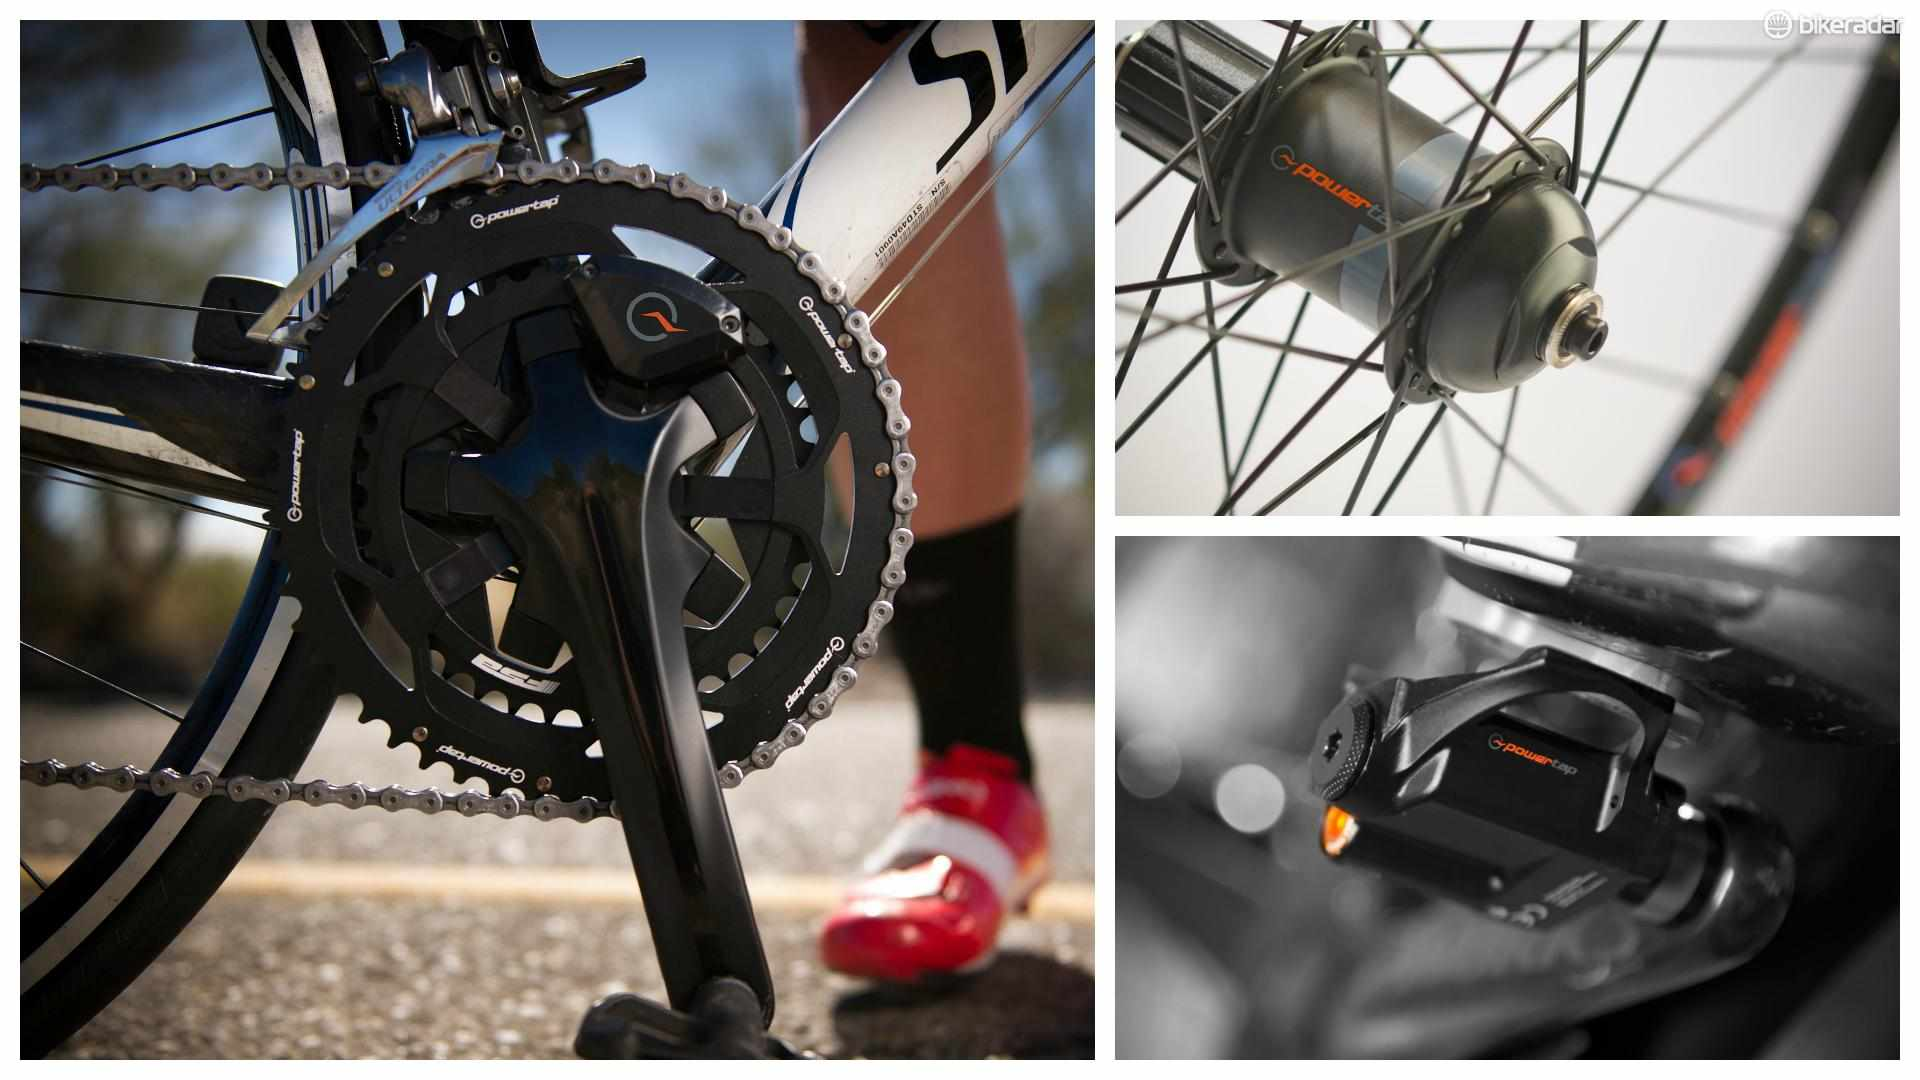 PowerTap produces a range of power meter products to suit many budgets